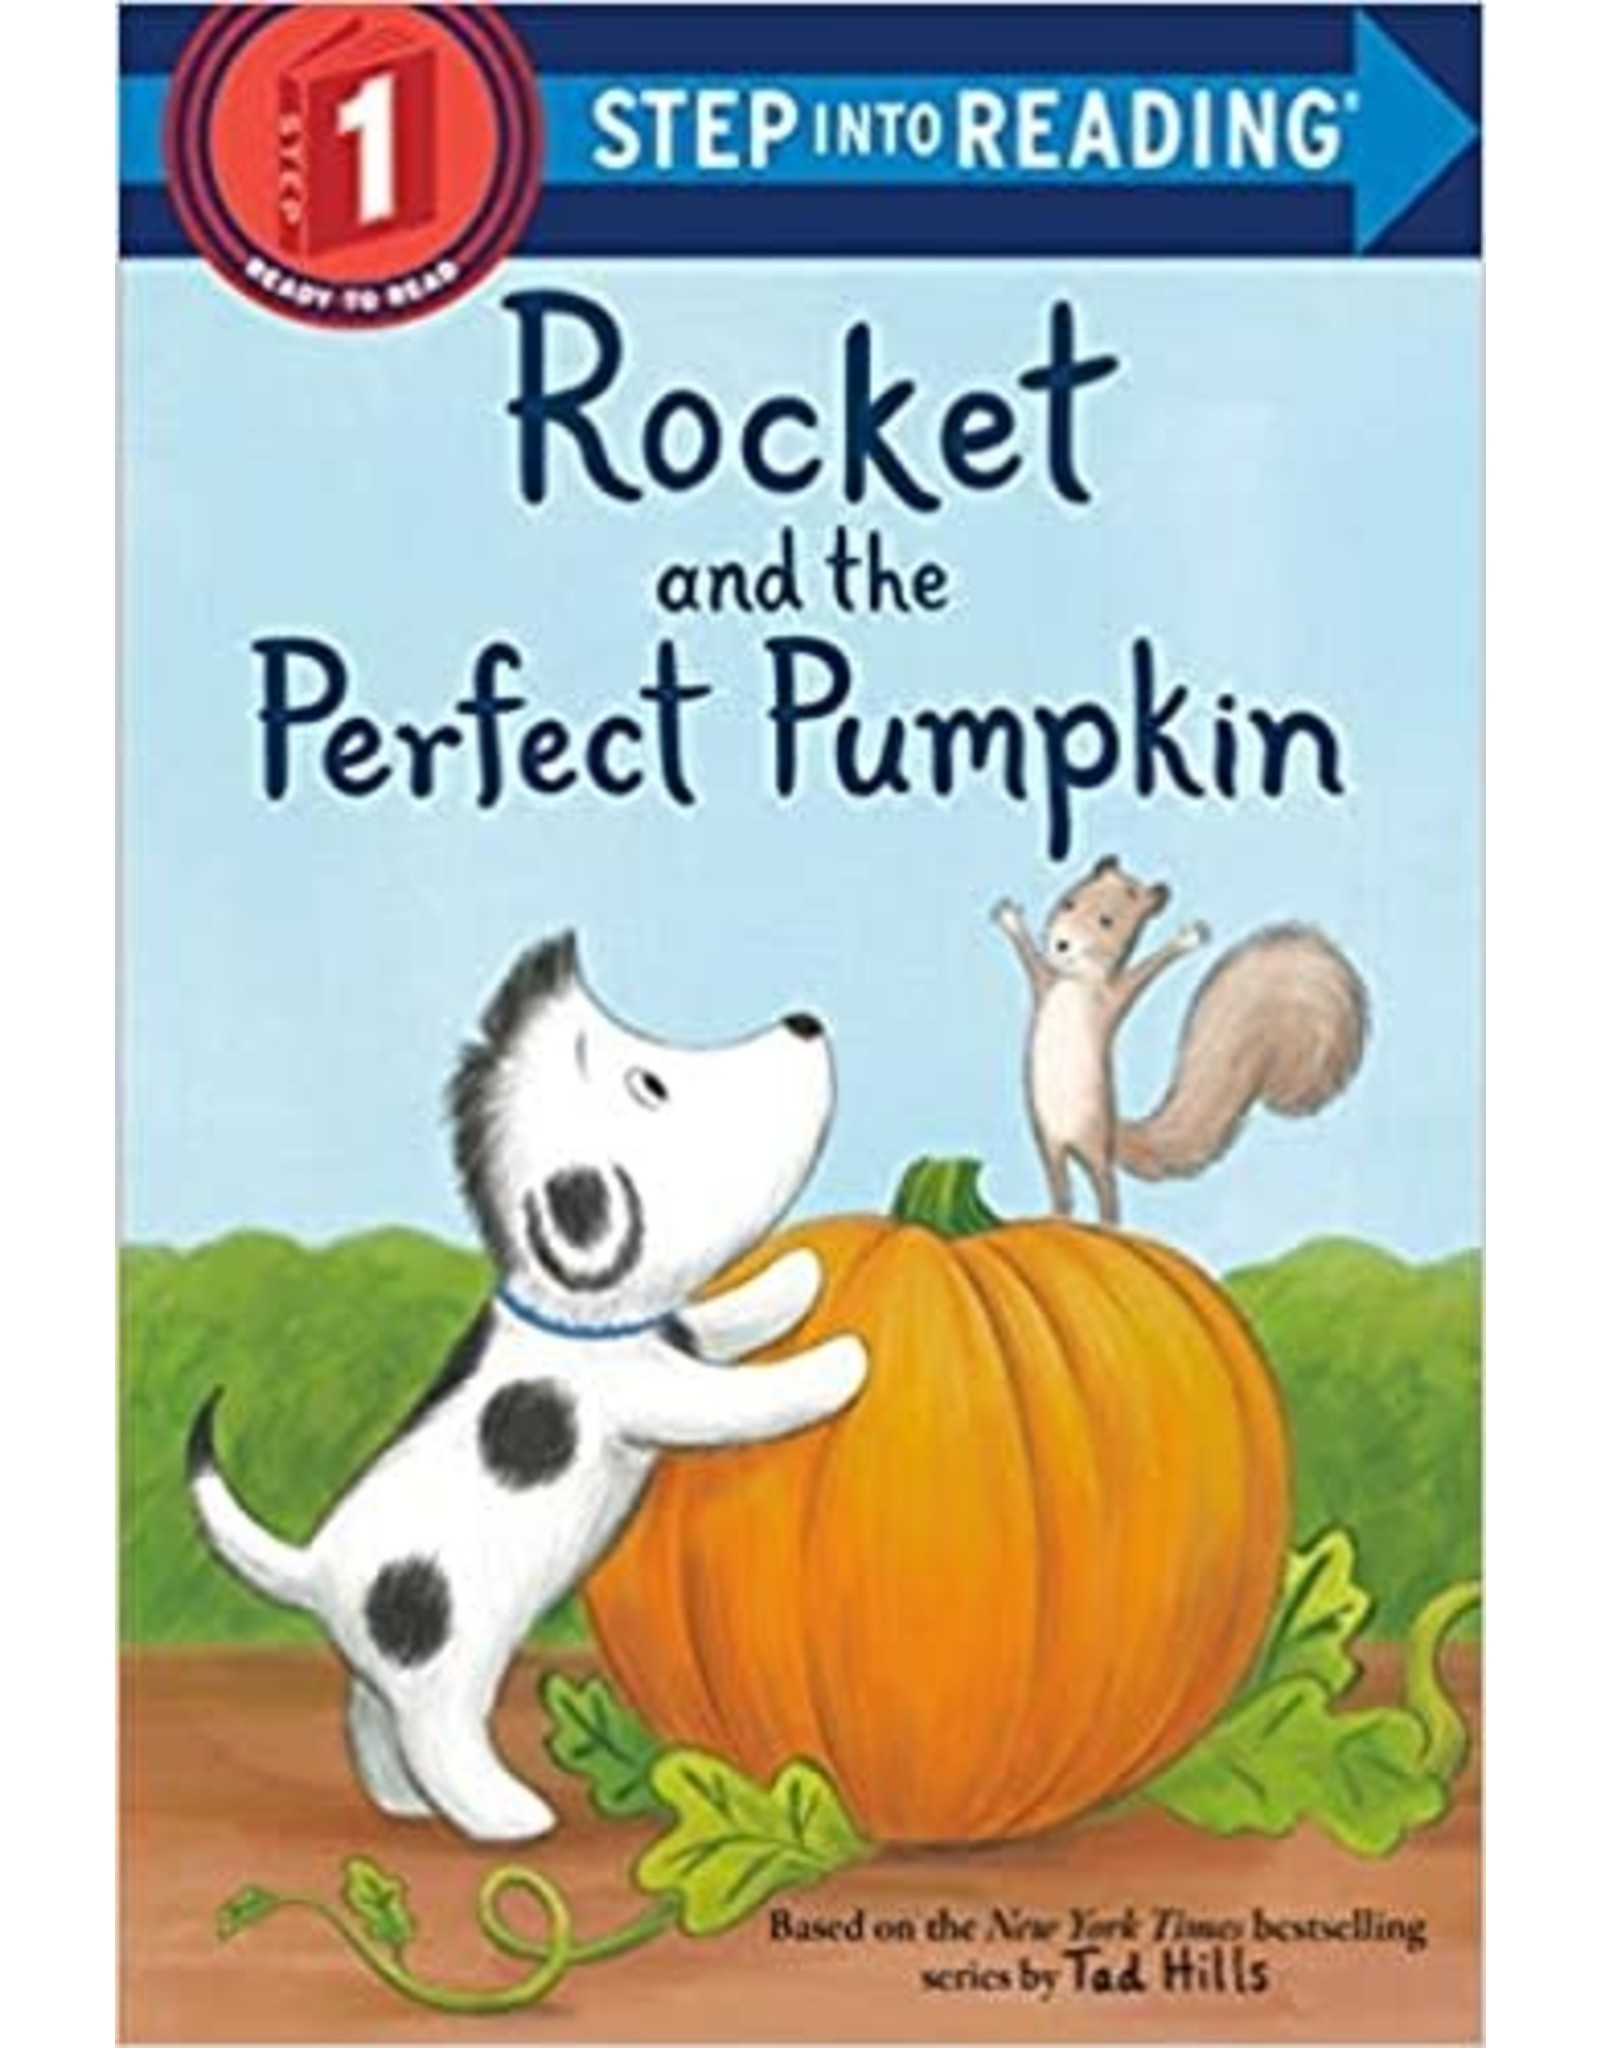 Step Into Reading Rocket and the Perfect Pumpkin